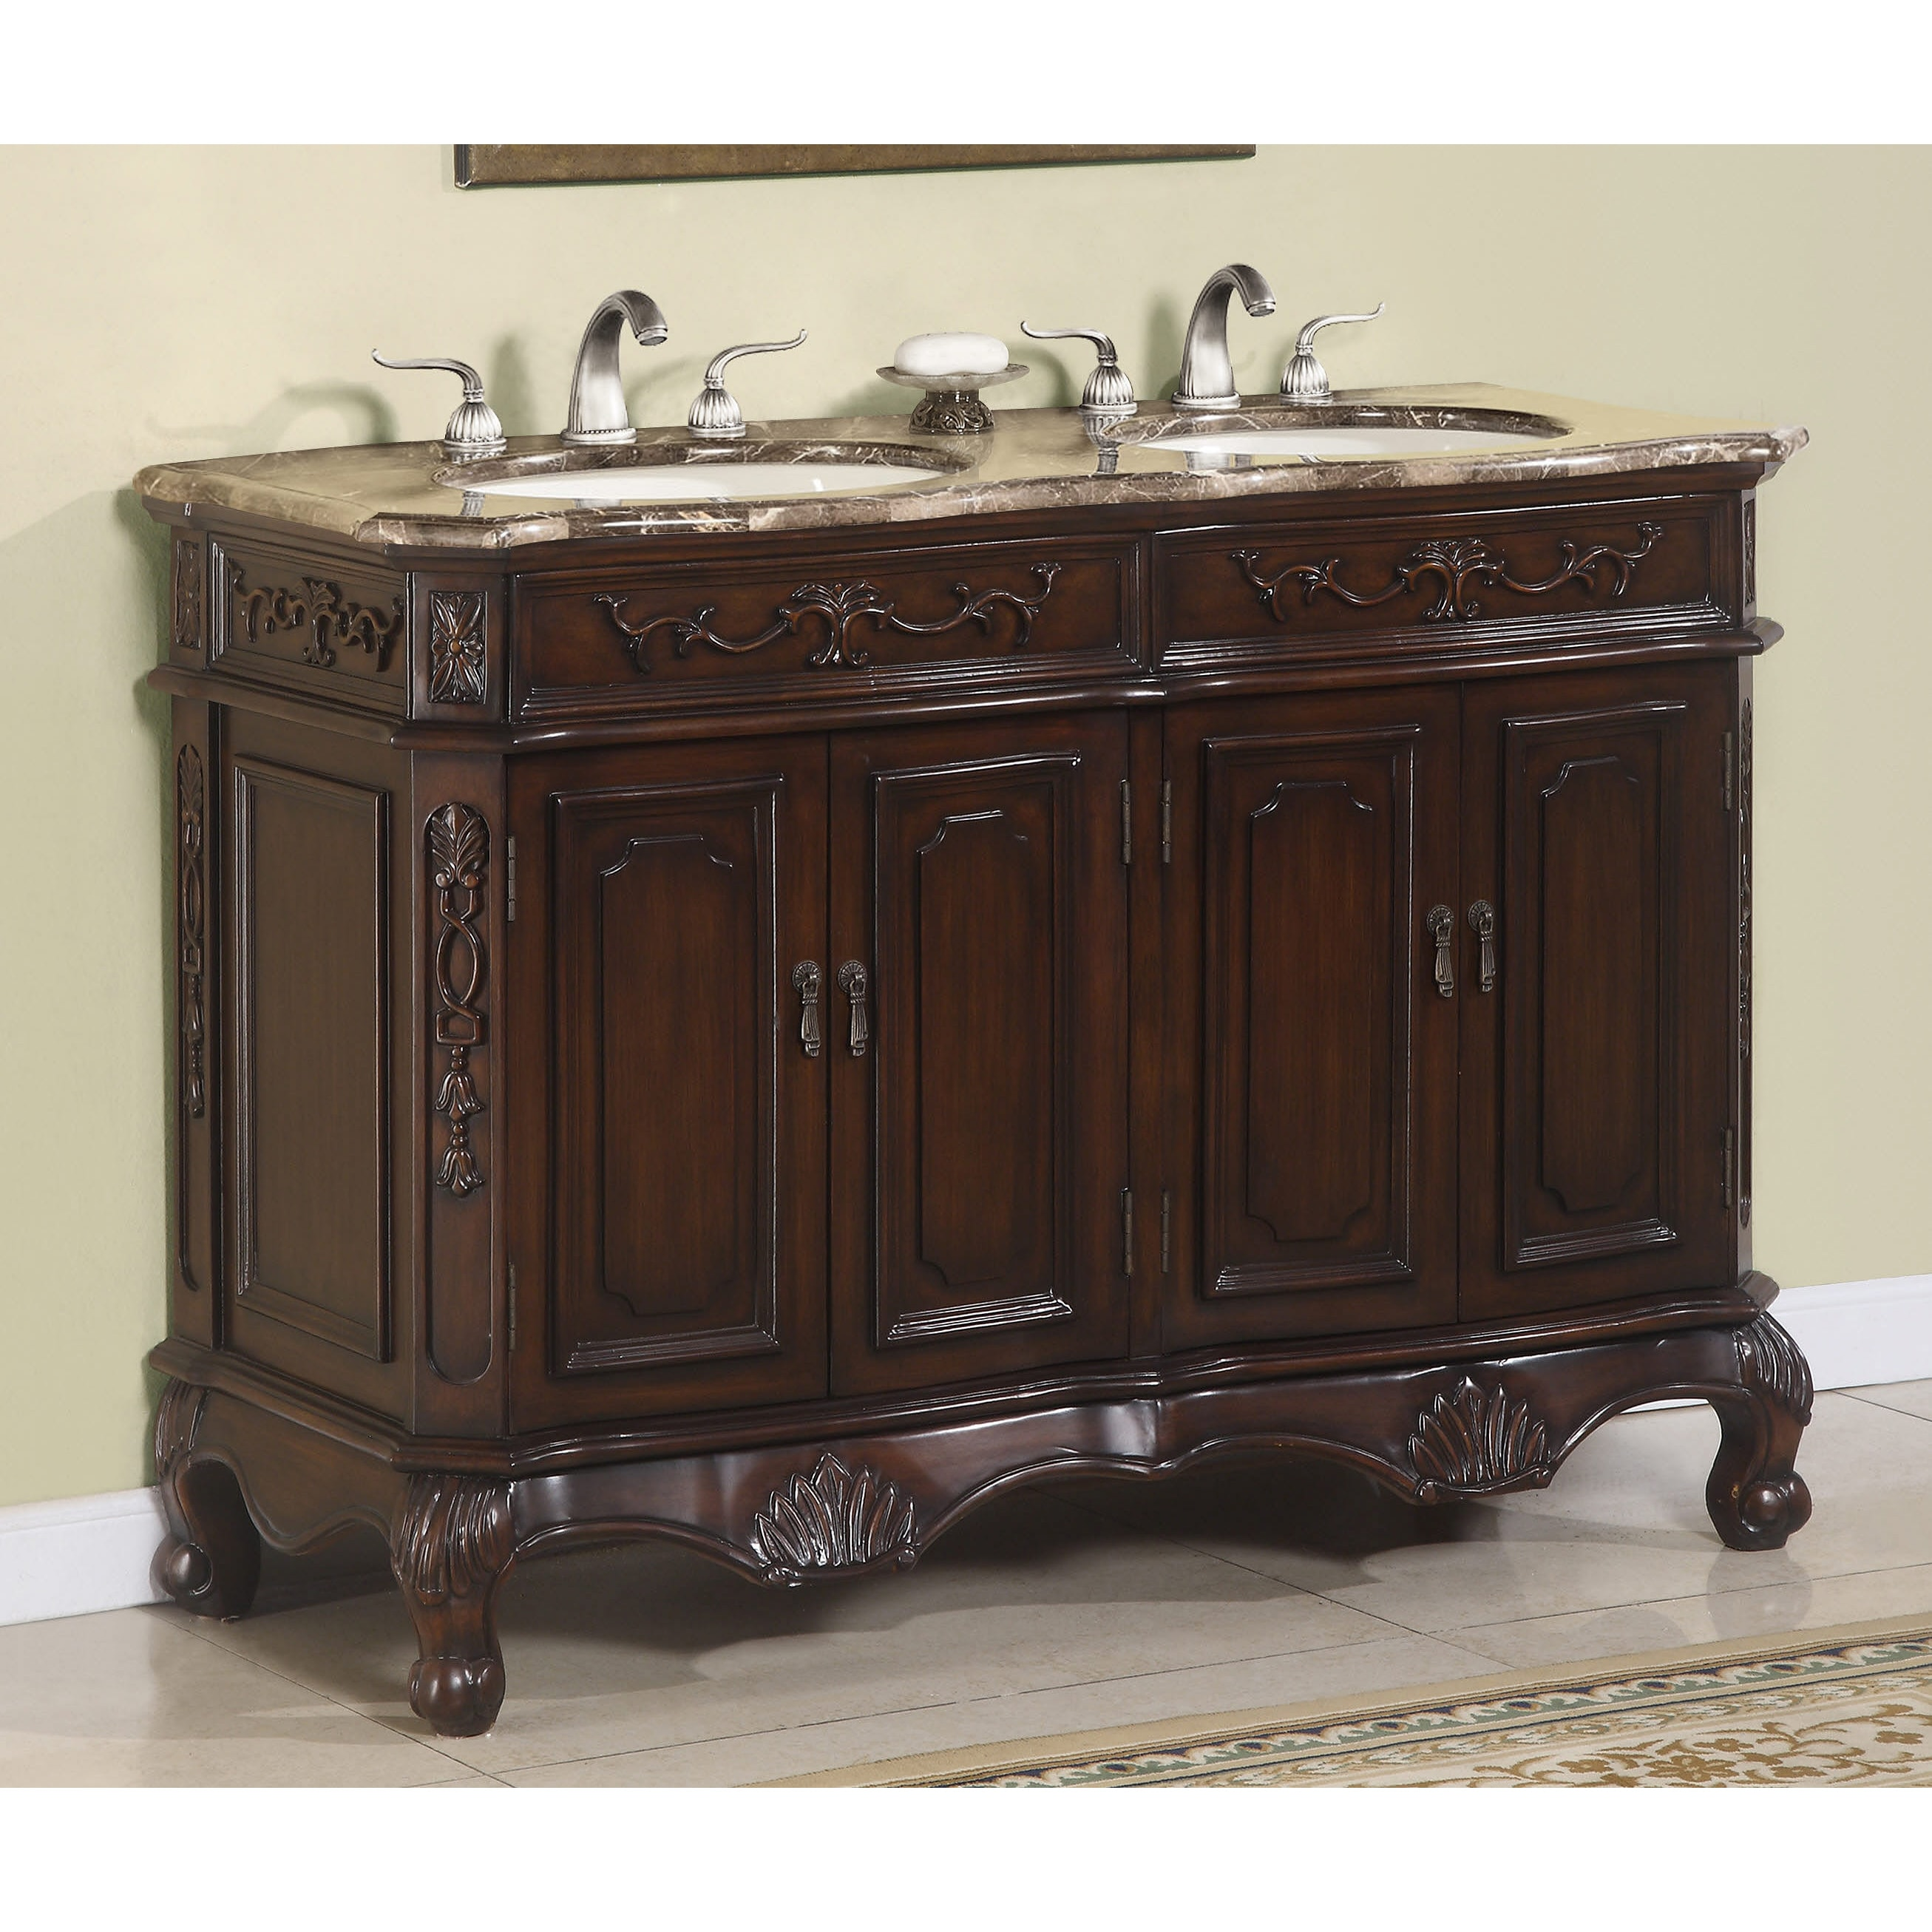 Hestia 50 inch Marble top Double Vanity Overstock Shopping Great Deals on